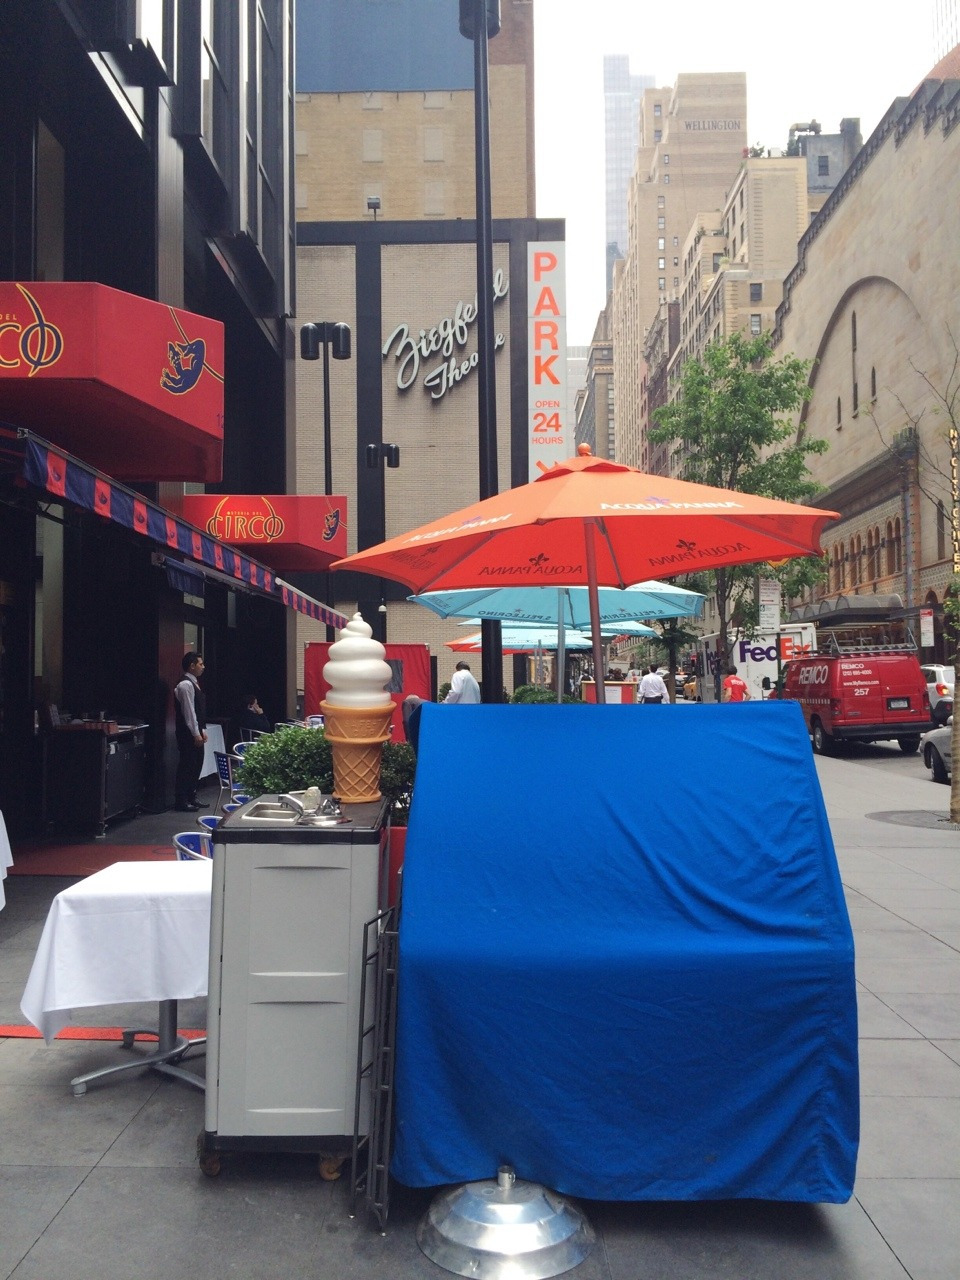 A fake ice cream cone / Stands in form all day long, No / Point in being real. #haiku #nyc